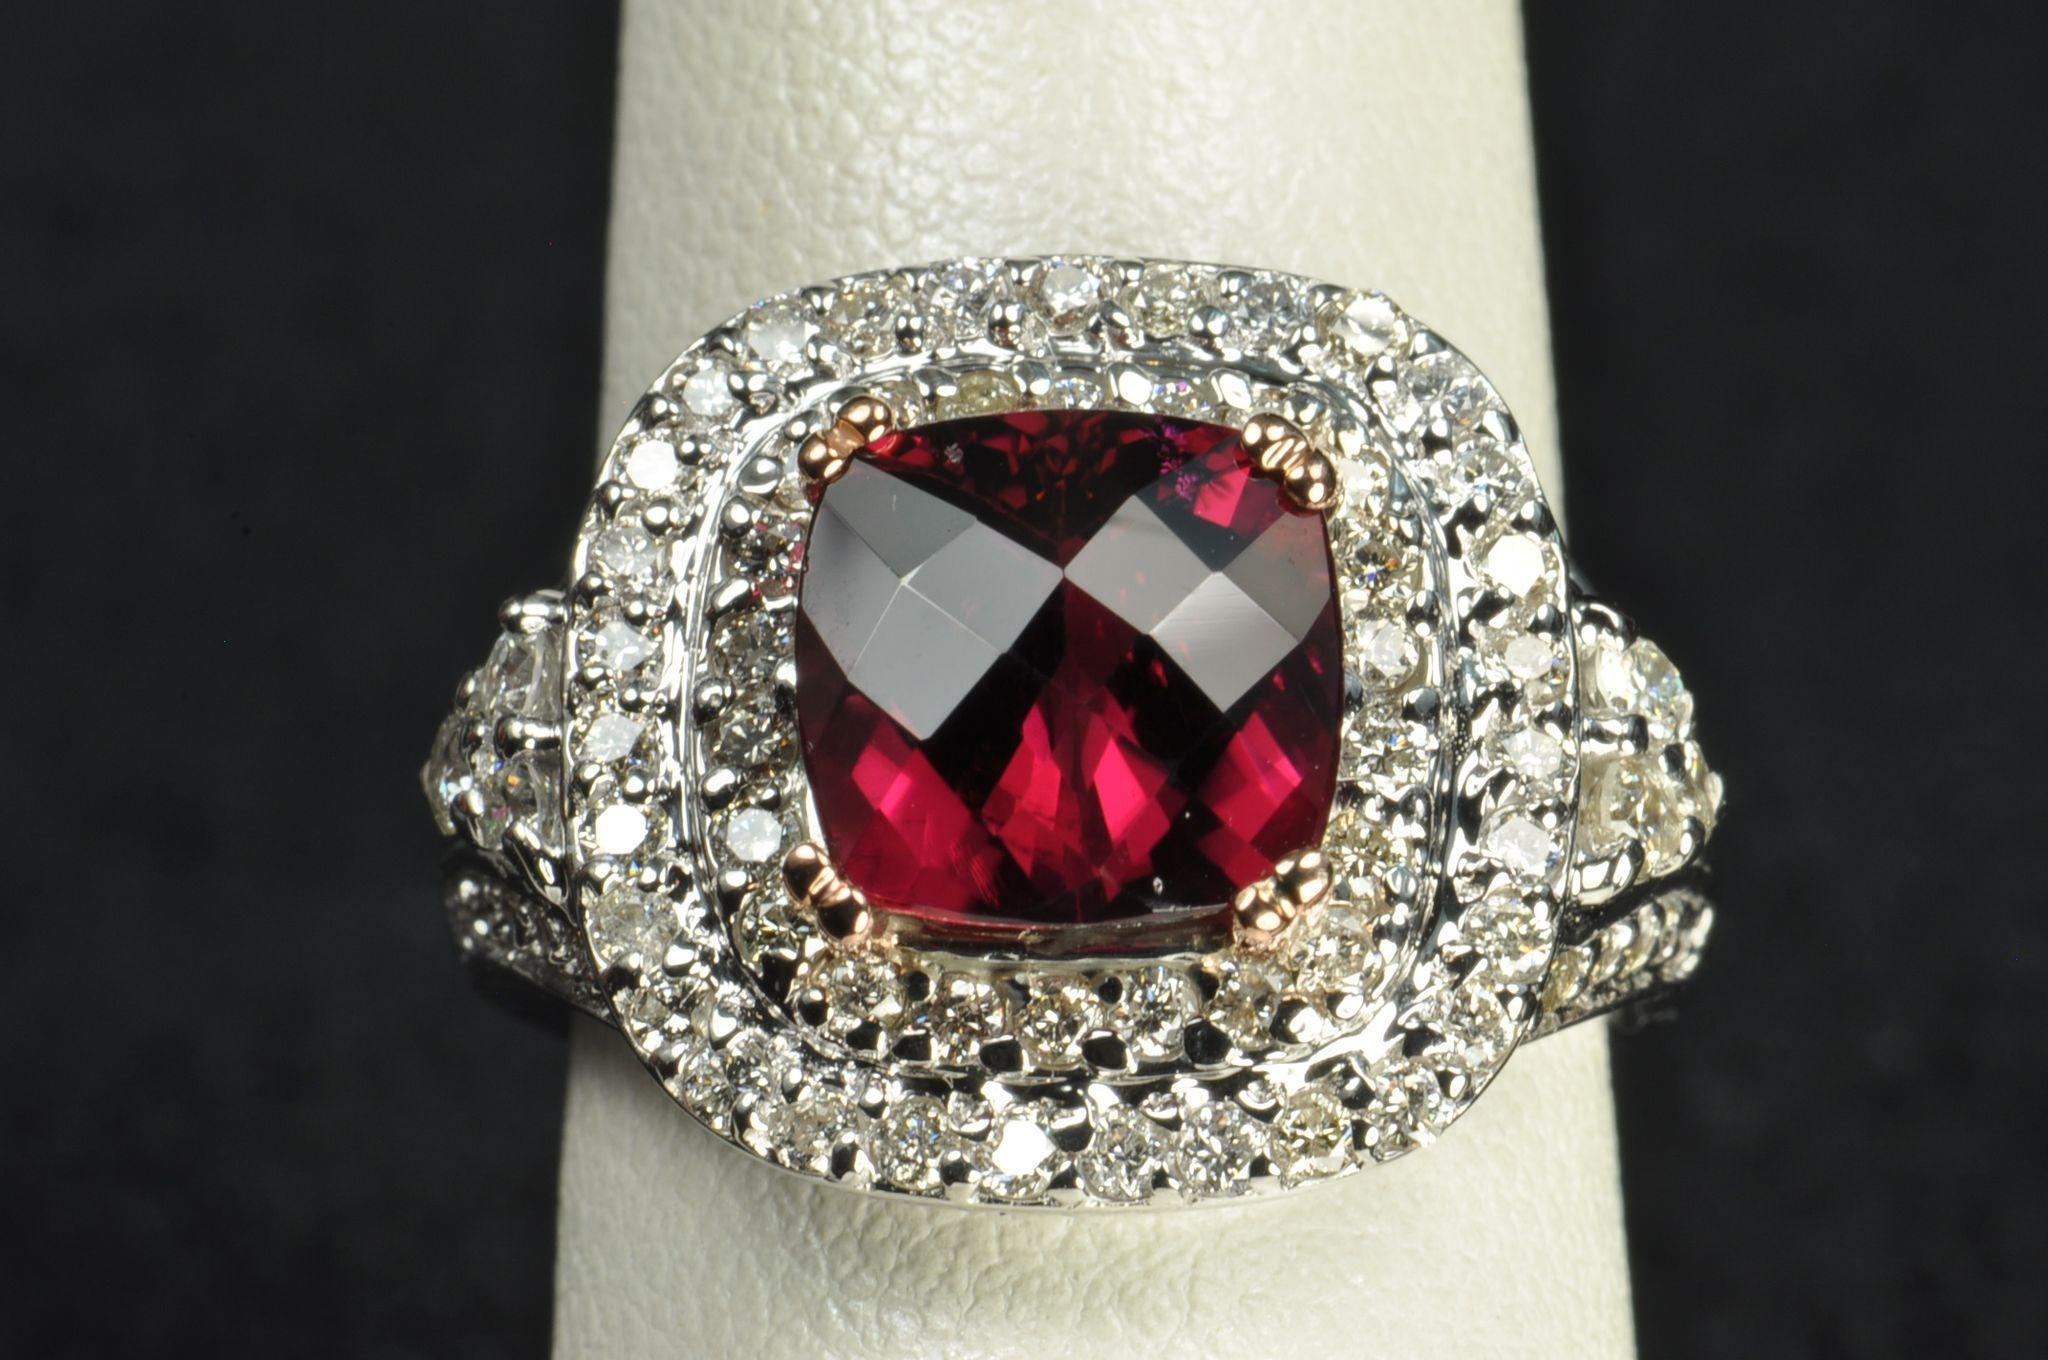 3 5 carat diamond and rubellite tourmaline ring from. Black Bedroom Furniture Sets. Home Design Ideas